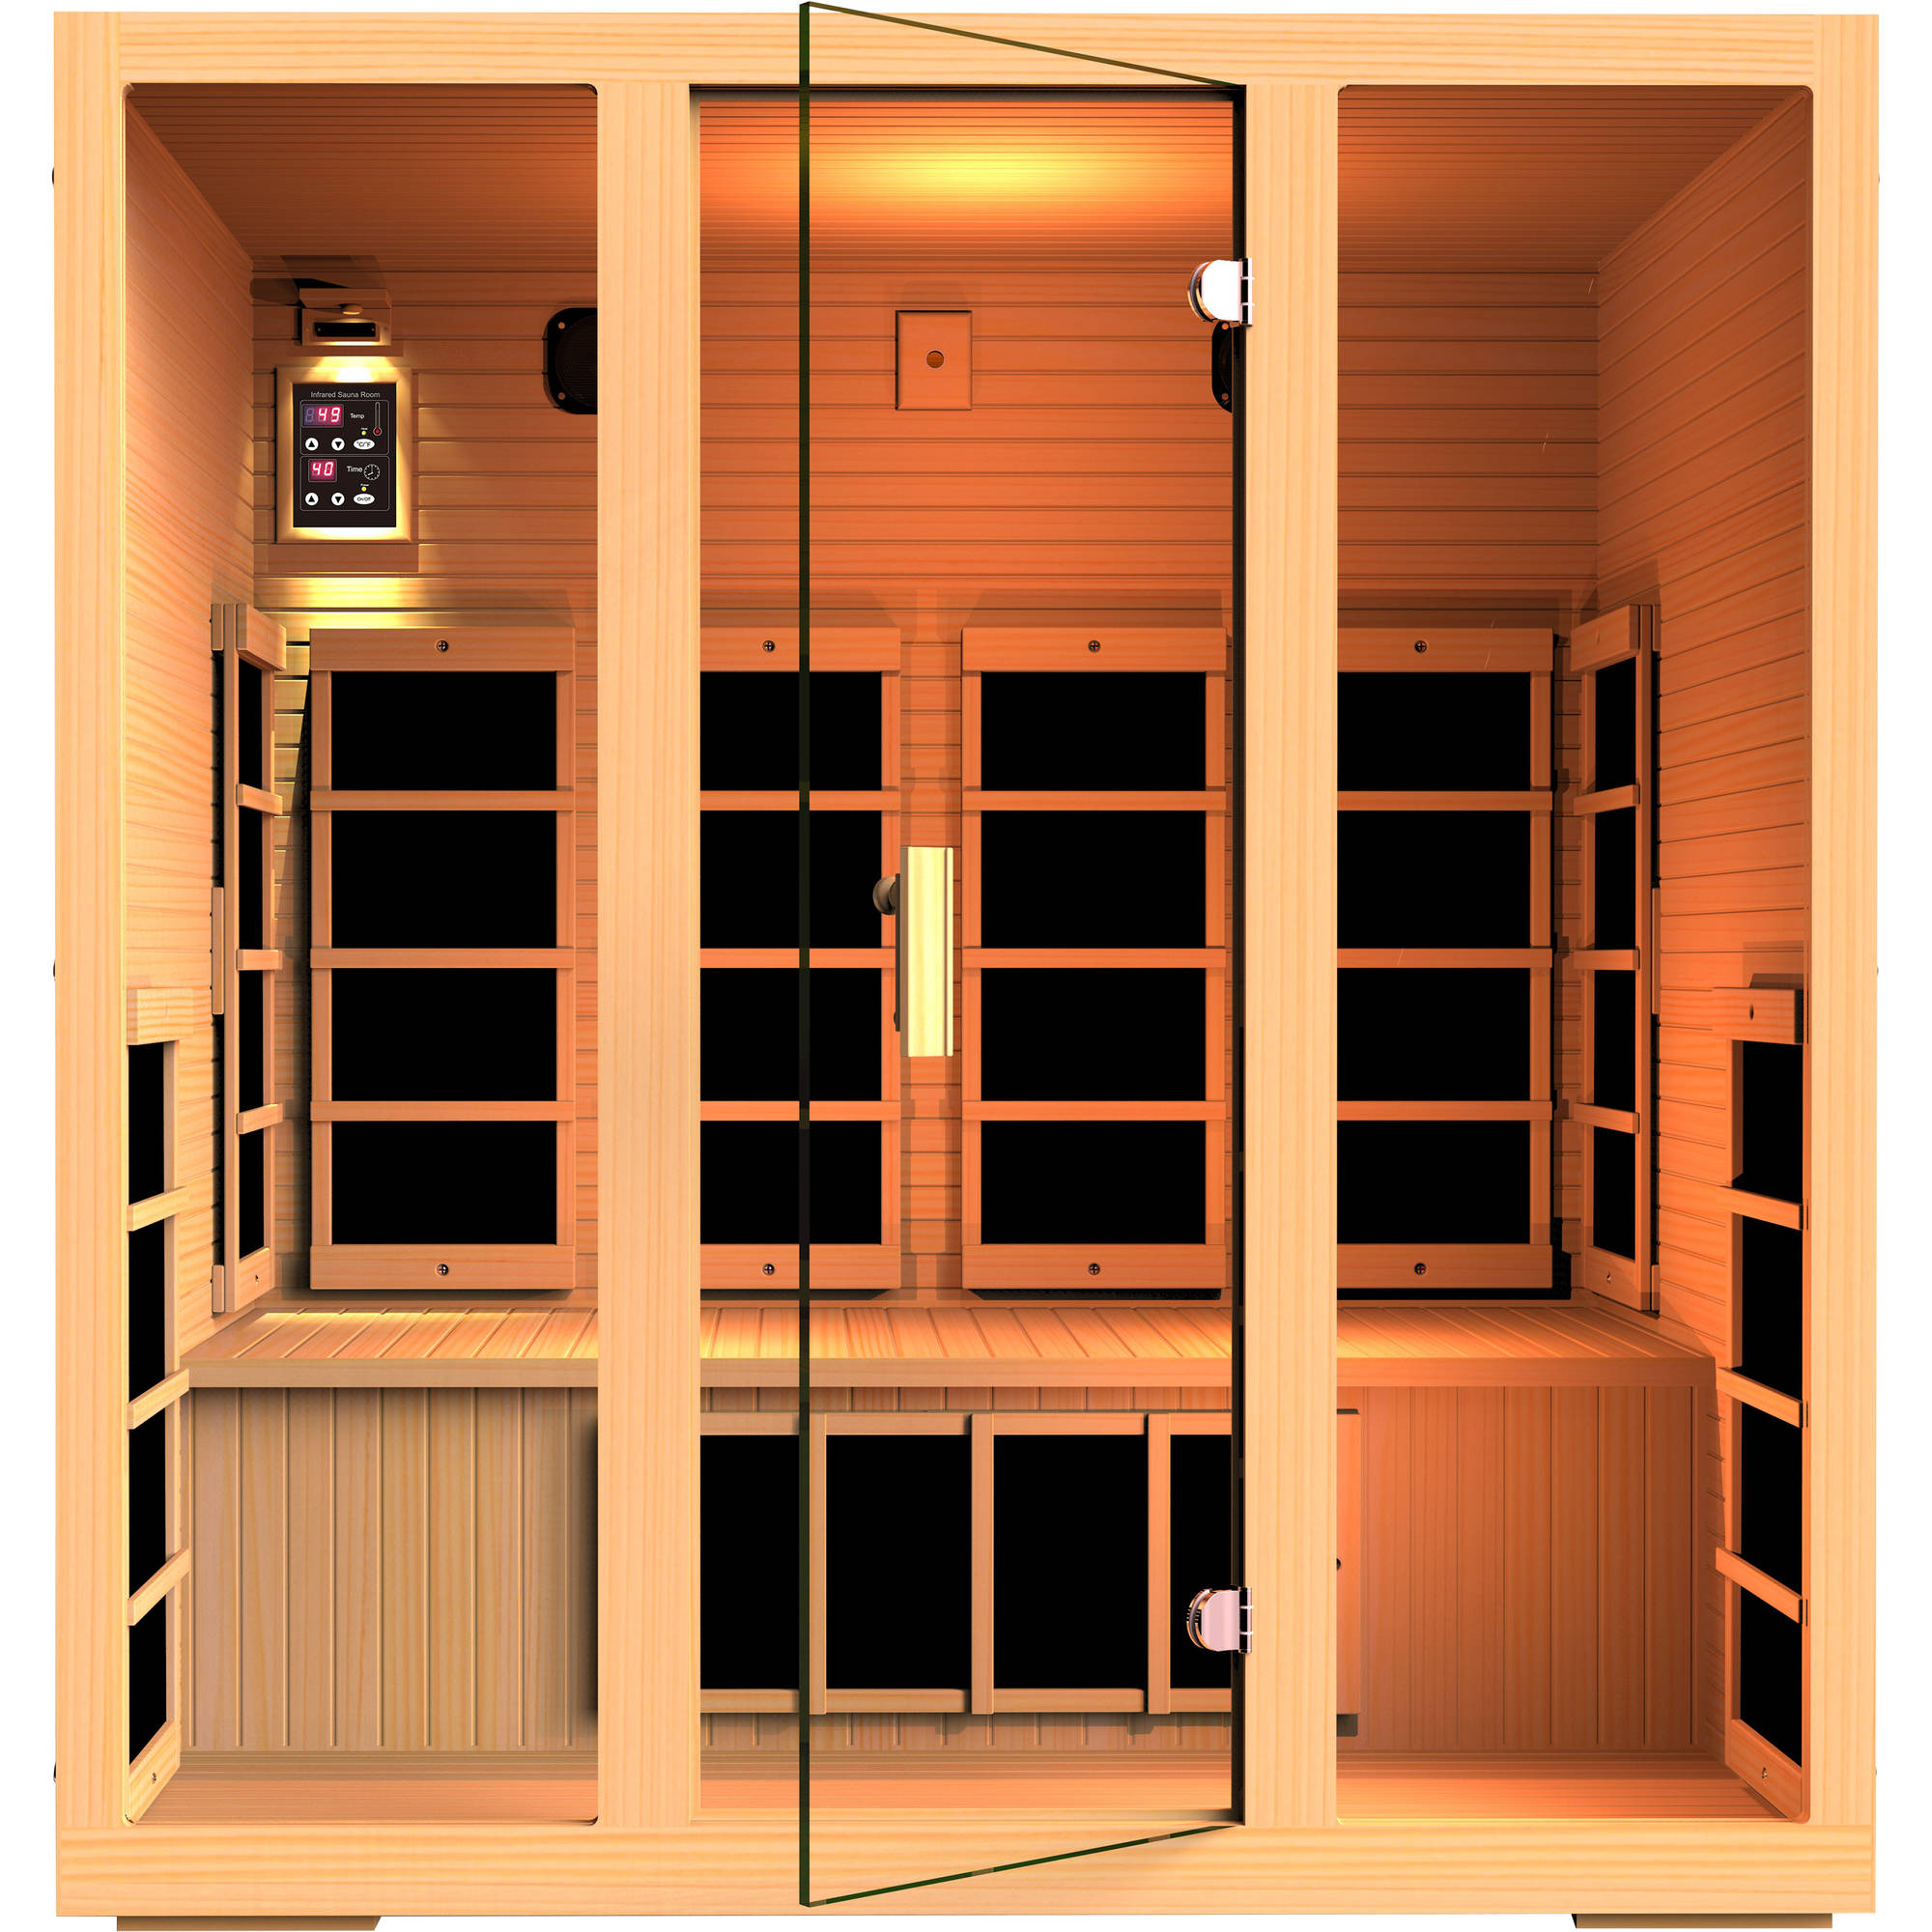 Joyous 4-Person Far Infrared Sauna